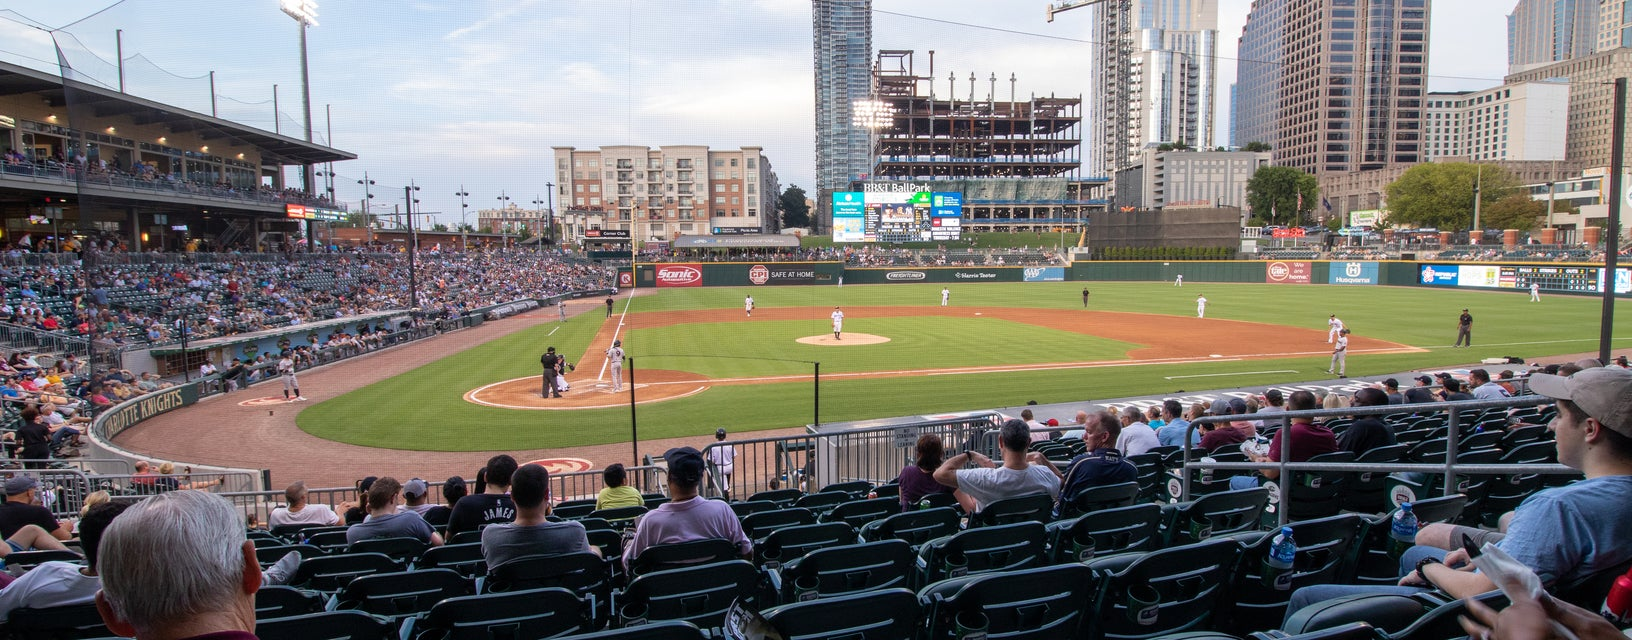 Seat view from Budweiser Home Plate Club